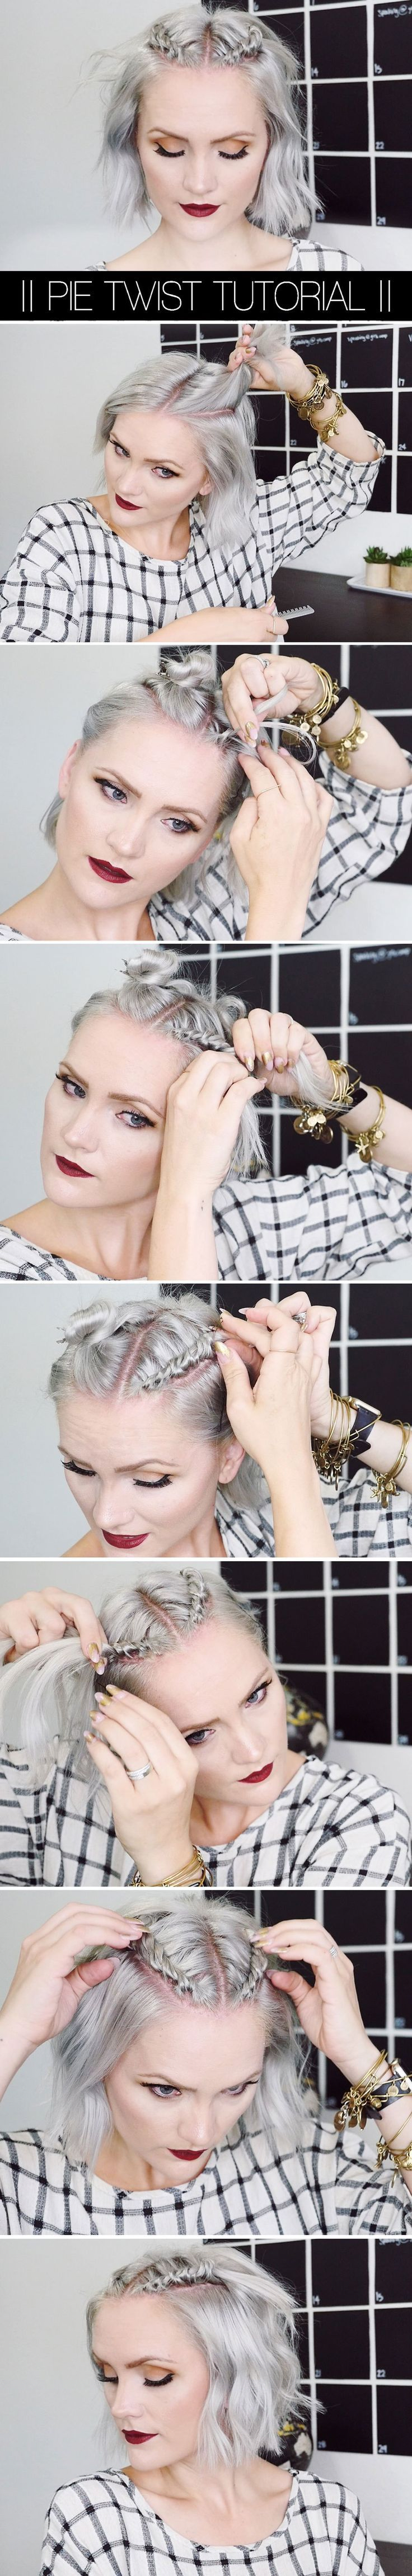 See the 3 reasons you will LOVE  this twisted hair tutorial - SO EASY!